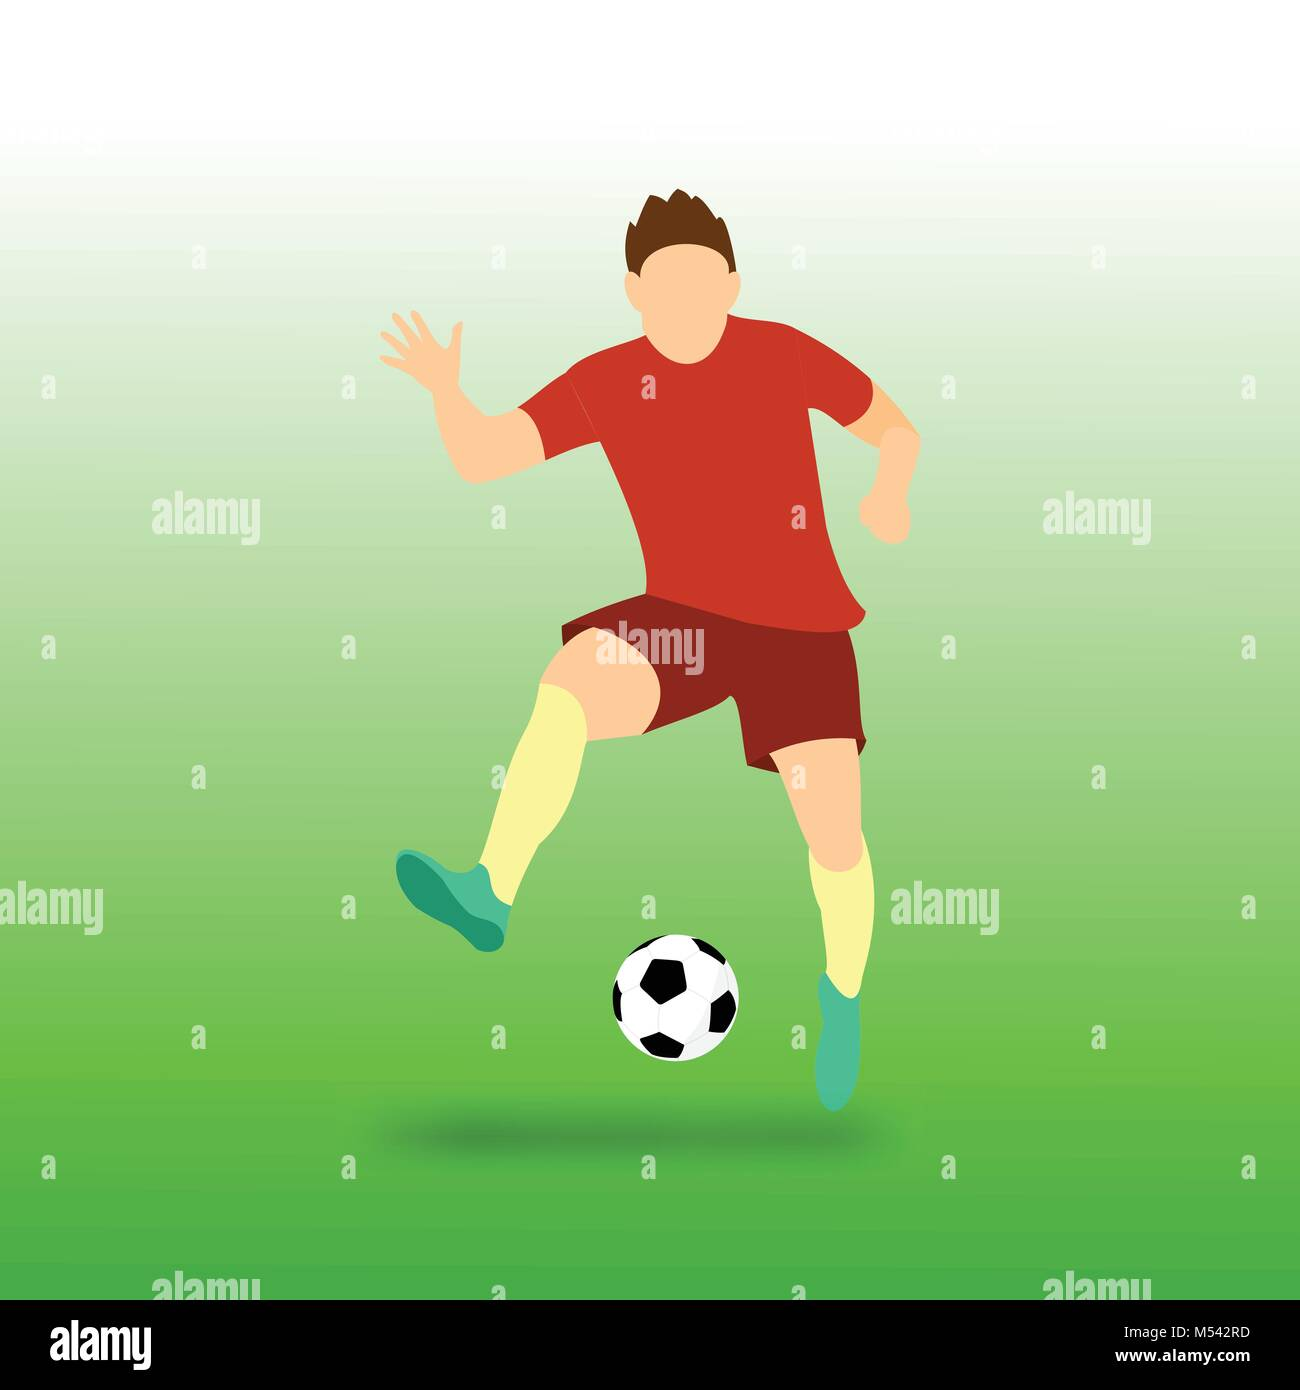 Freestyle Football Soccer Player Vector Illustration Graphic Design Stock Vector